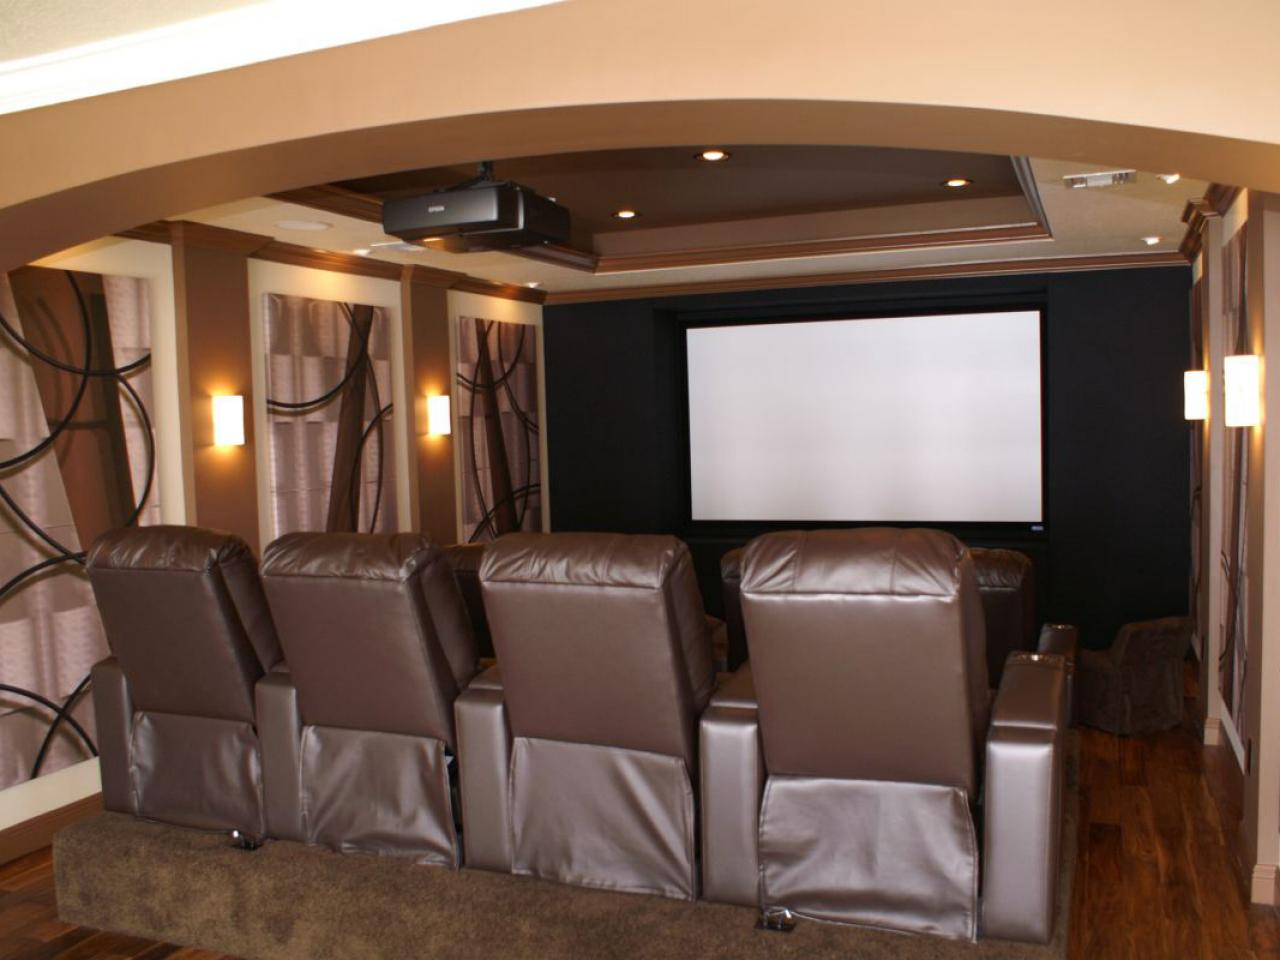 How to build a home theater hgtv for 8 x 12 room design